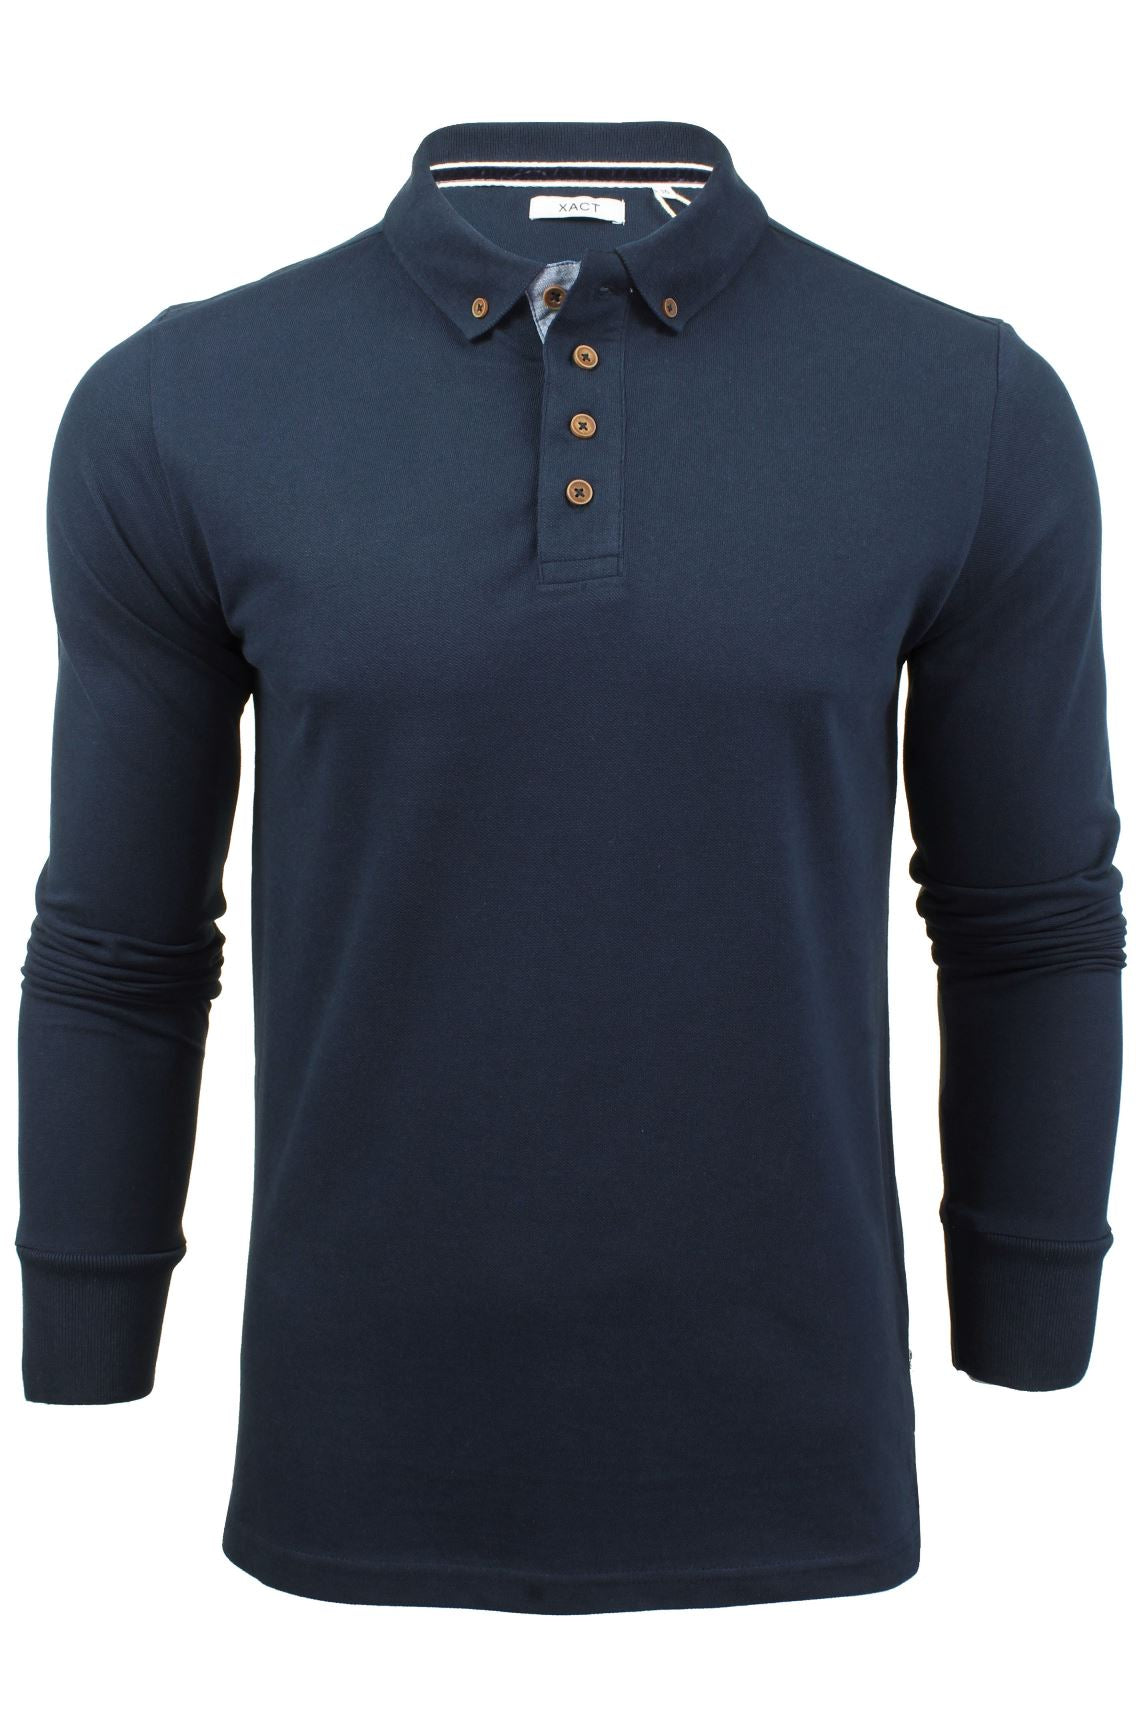 Mens Polo T-Shirt by Xact Pique Long Sleeved_01_XP1003_Ocean Blue